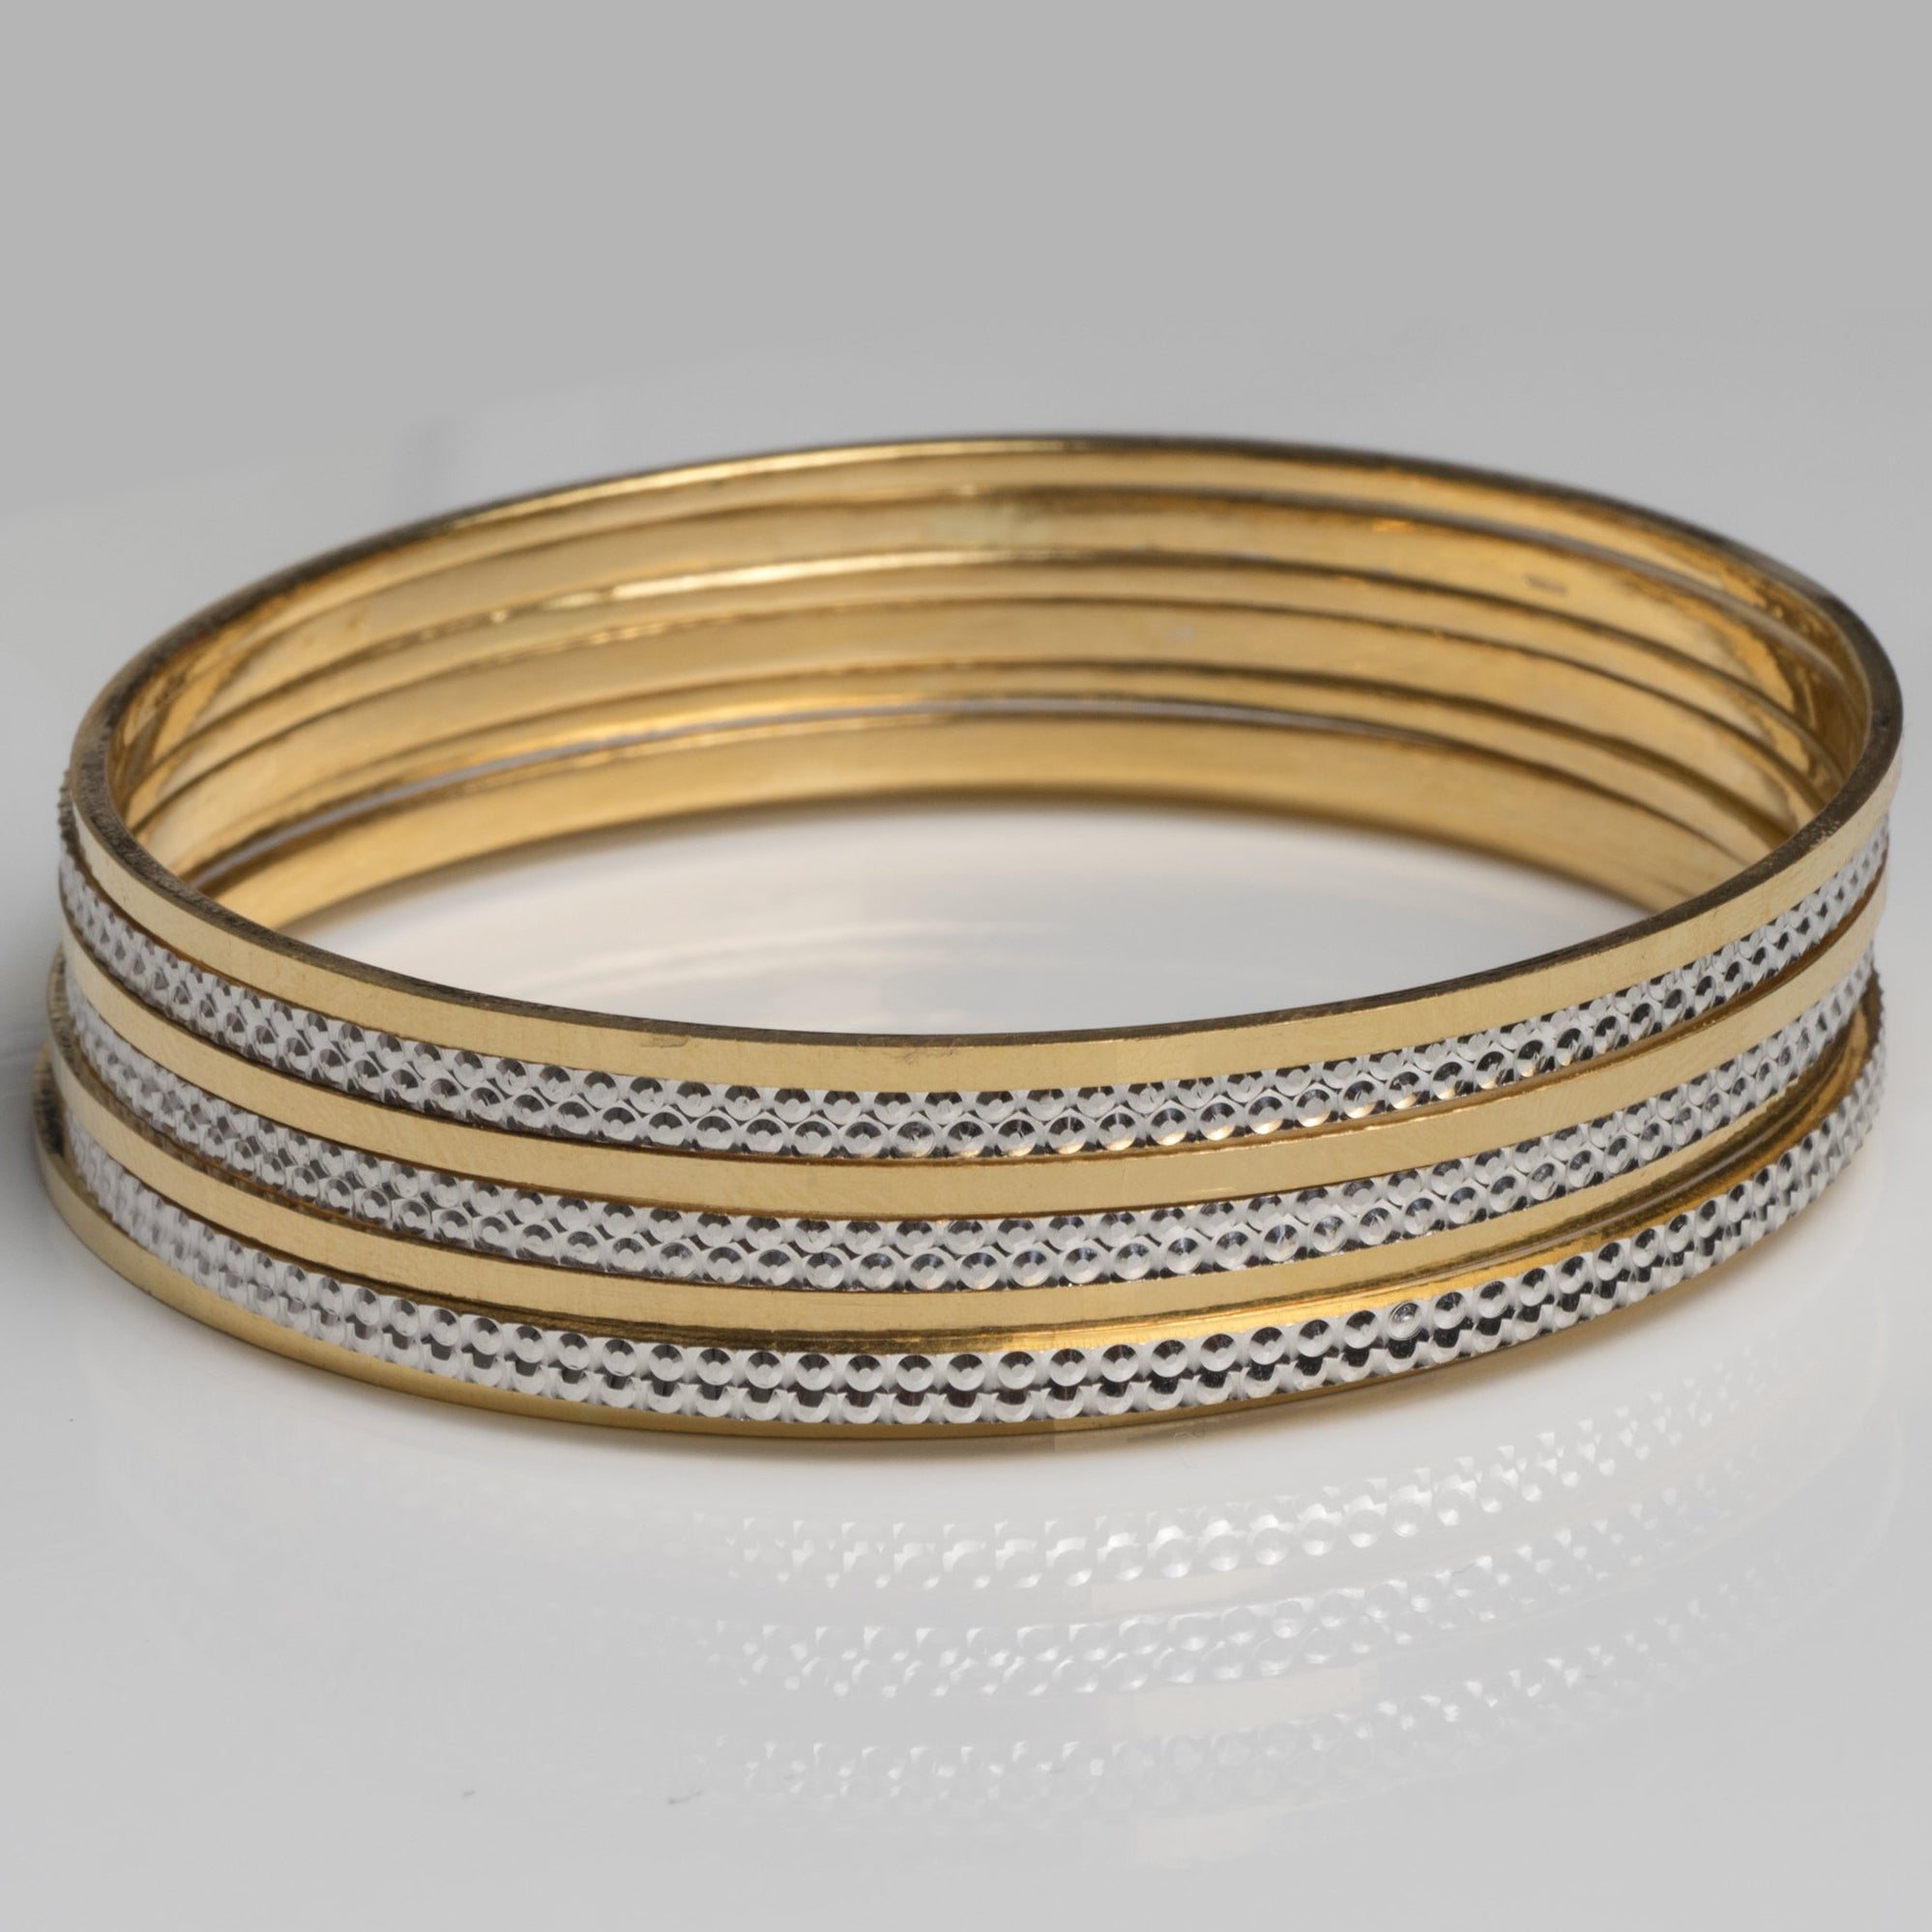 22ct Gold Diamond Cut and Rhodium Design Bangles (59.5g) B-7415